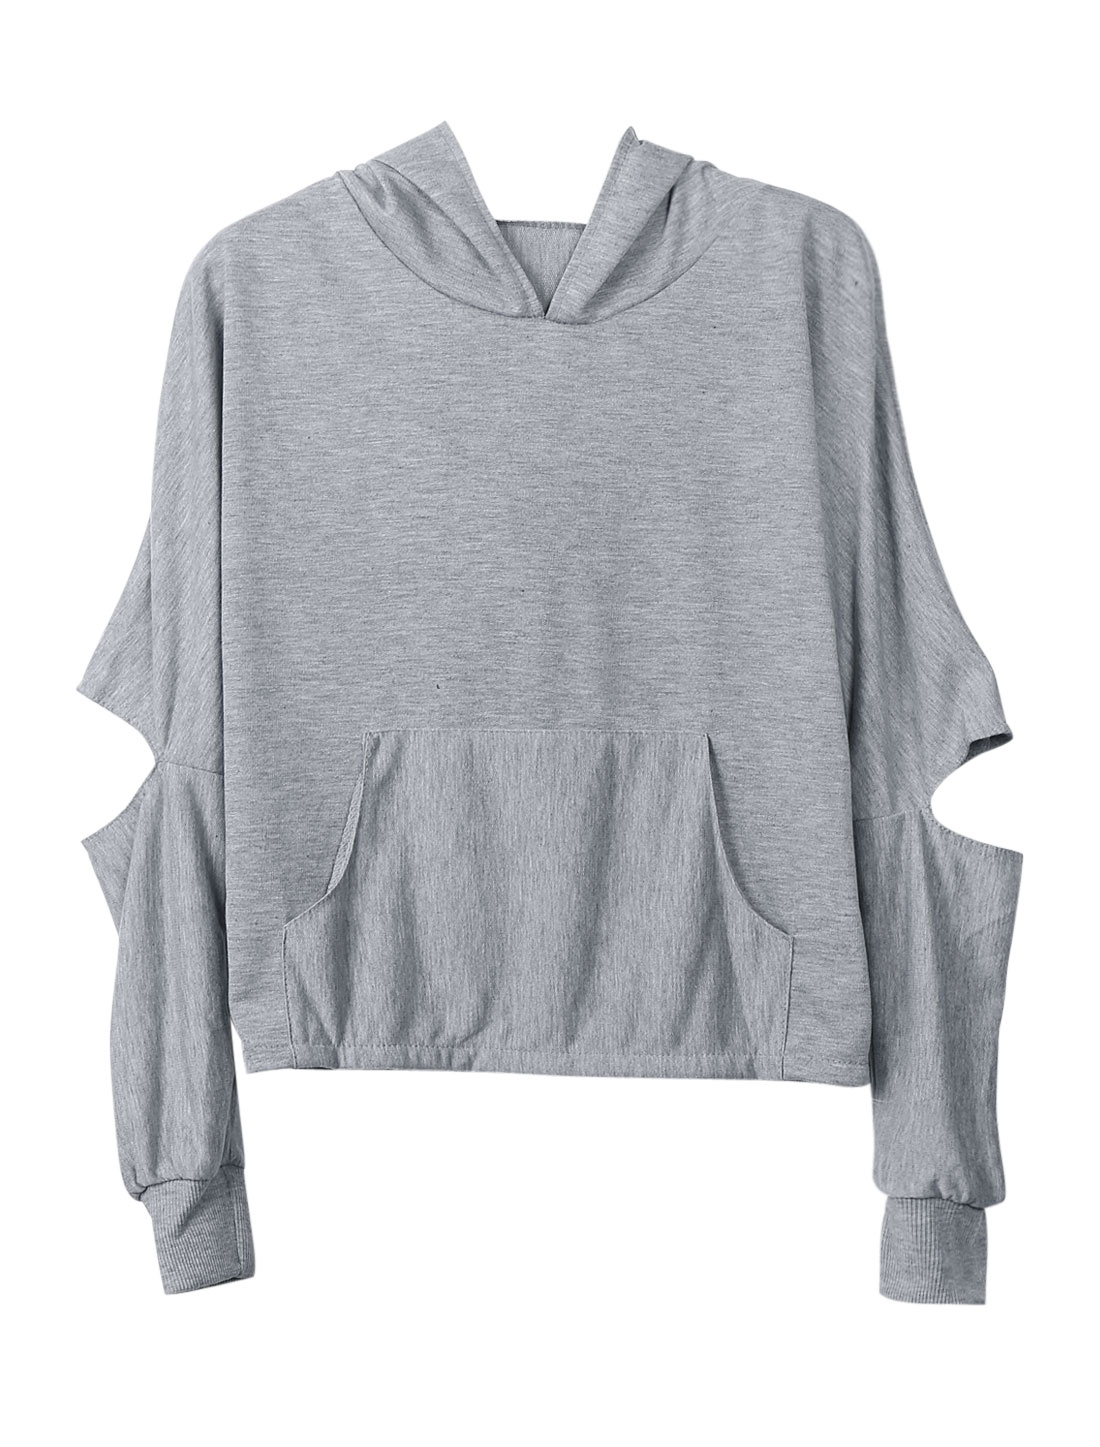 Ribbed Cuffs Split Long Sleeves Gray Hooded Top for Lady XS